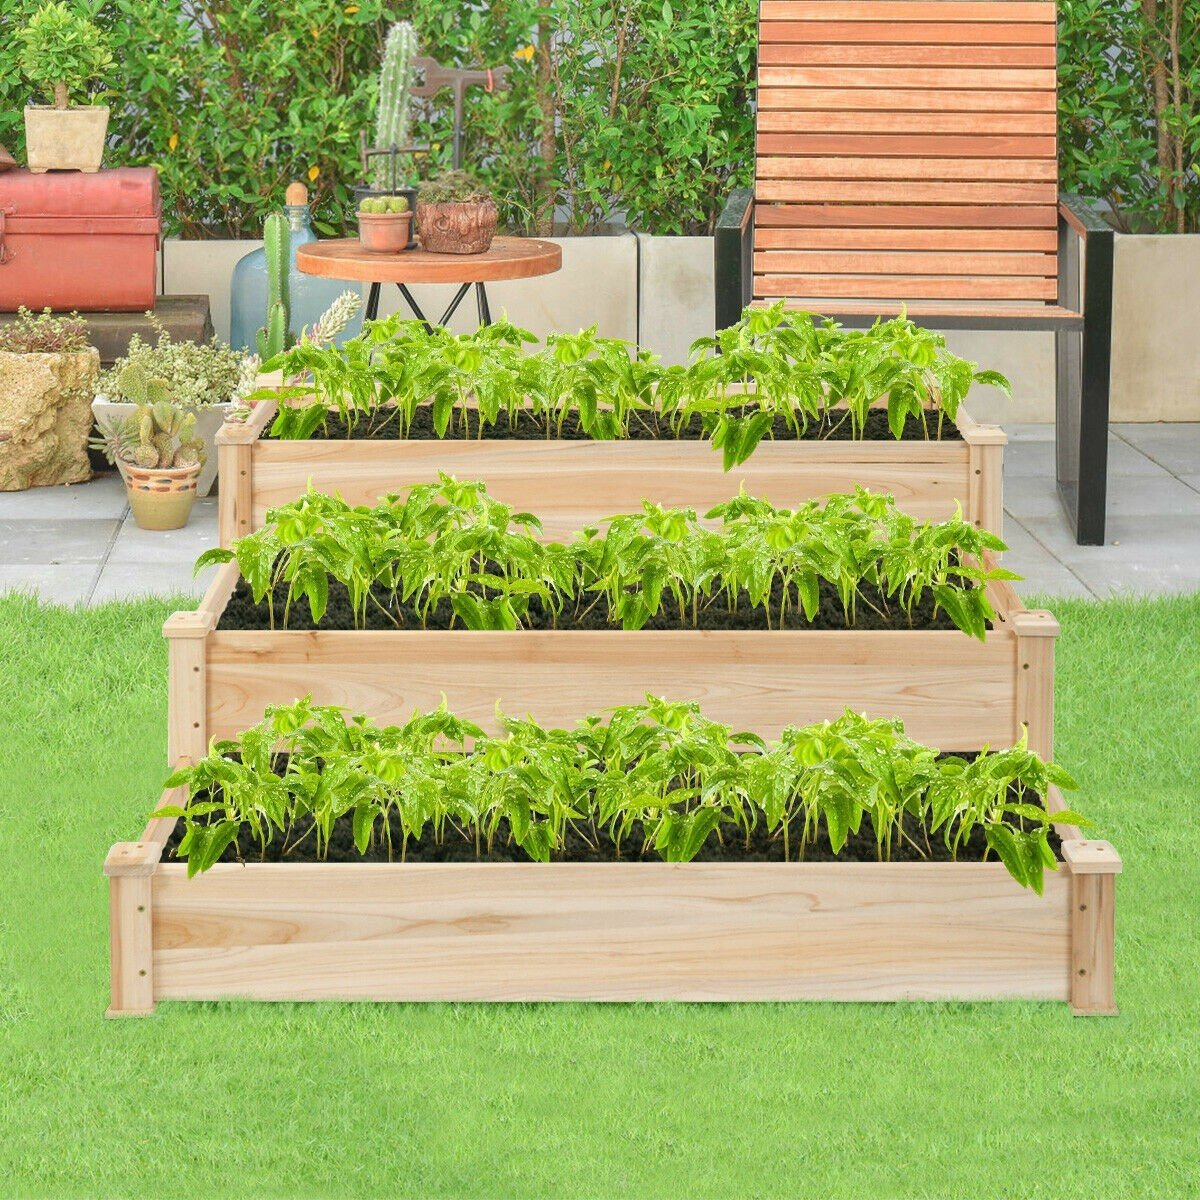 3 Tier Elevated Wooden Vegetable Garden Bed Vegetable Garden Beds Vegetable Garden Raised Beds Raised Garden Beds